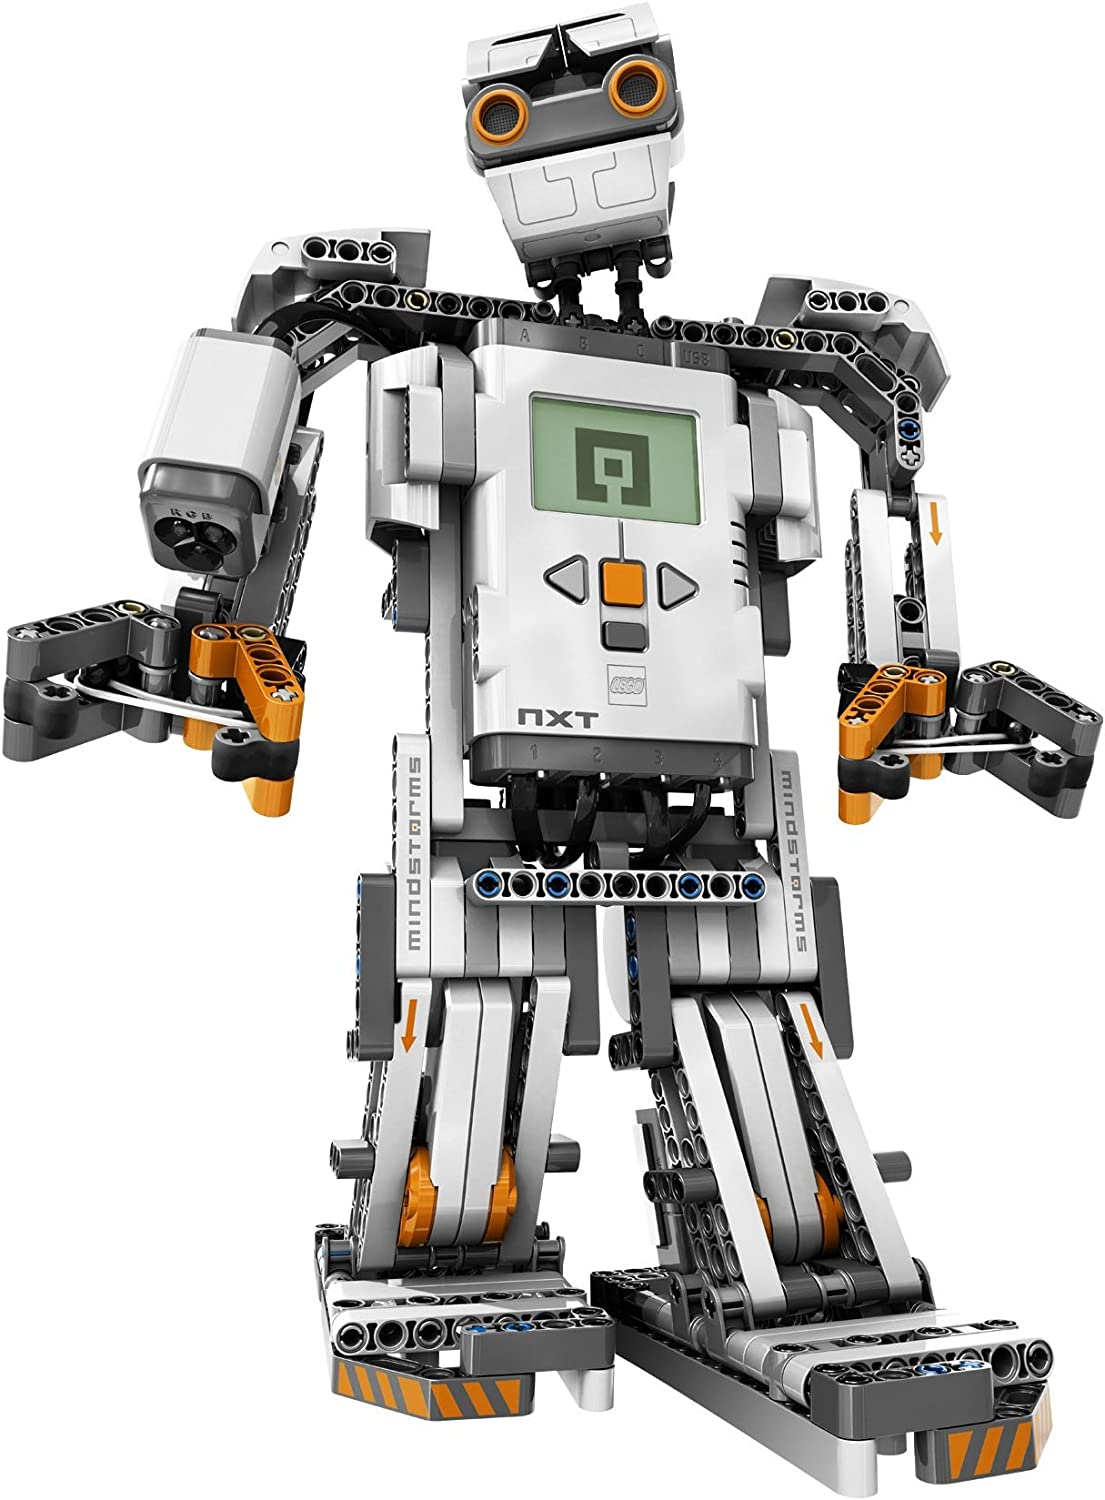 Amazon Com Lego Mindstorms Nxt 2 0 8547 Discontinued By Manufacturer Toys Games